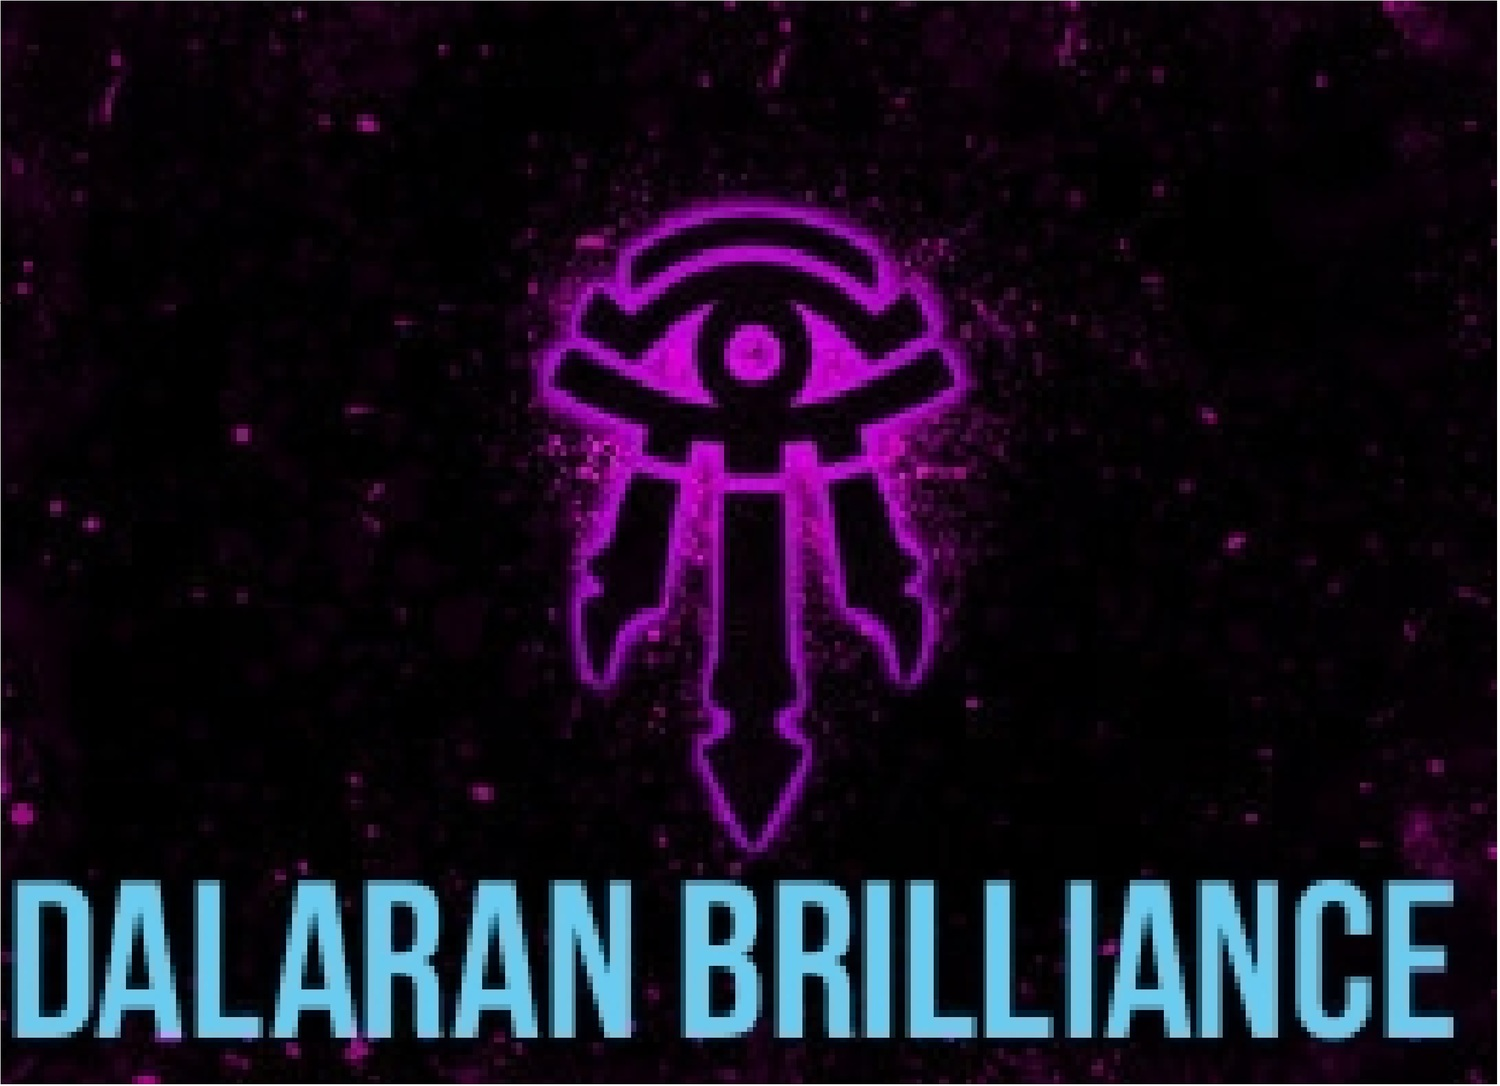 Dalaran Brilliance Episode Archive - Dalaran Brilliance Podcast For Mages In The World Of Warcraft